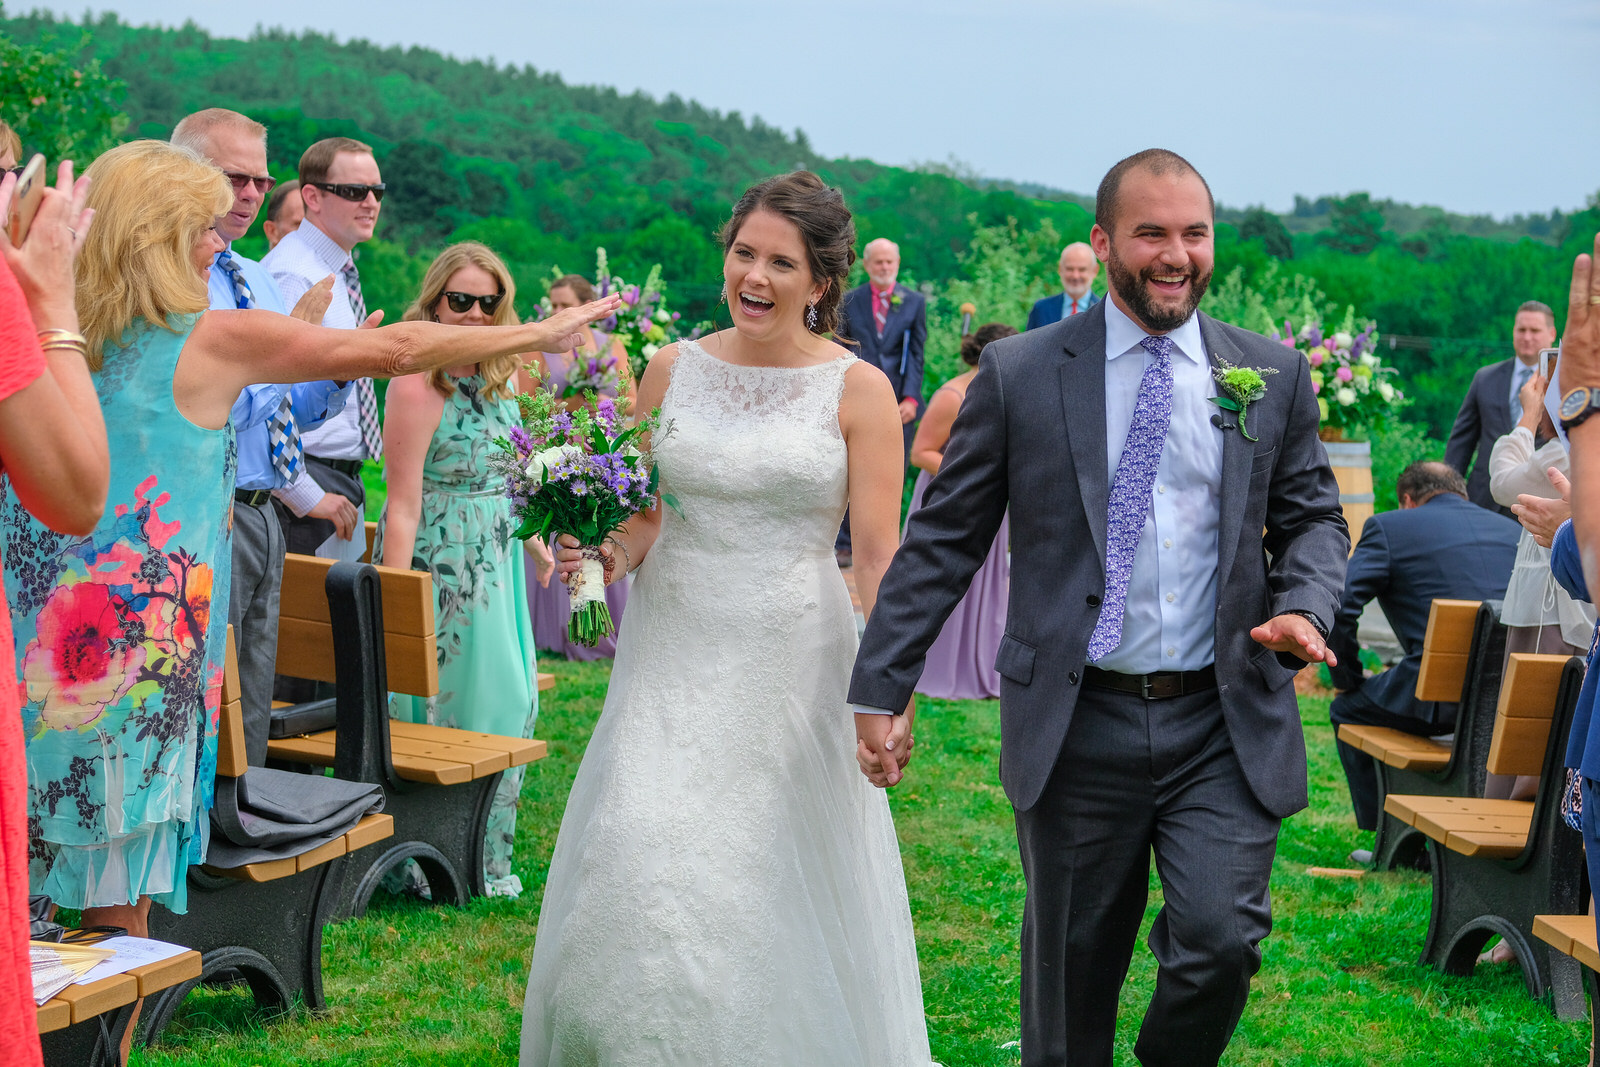 nashoba-valley-winery-wedding-photography-429.jpg